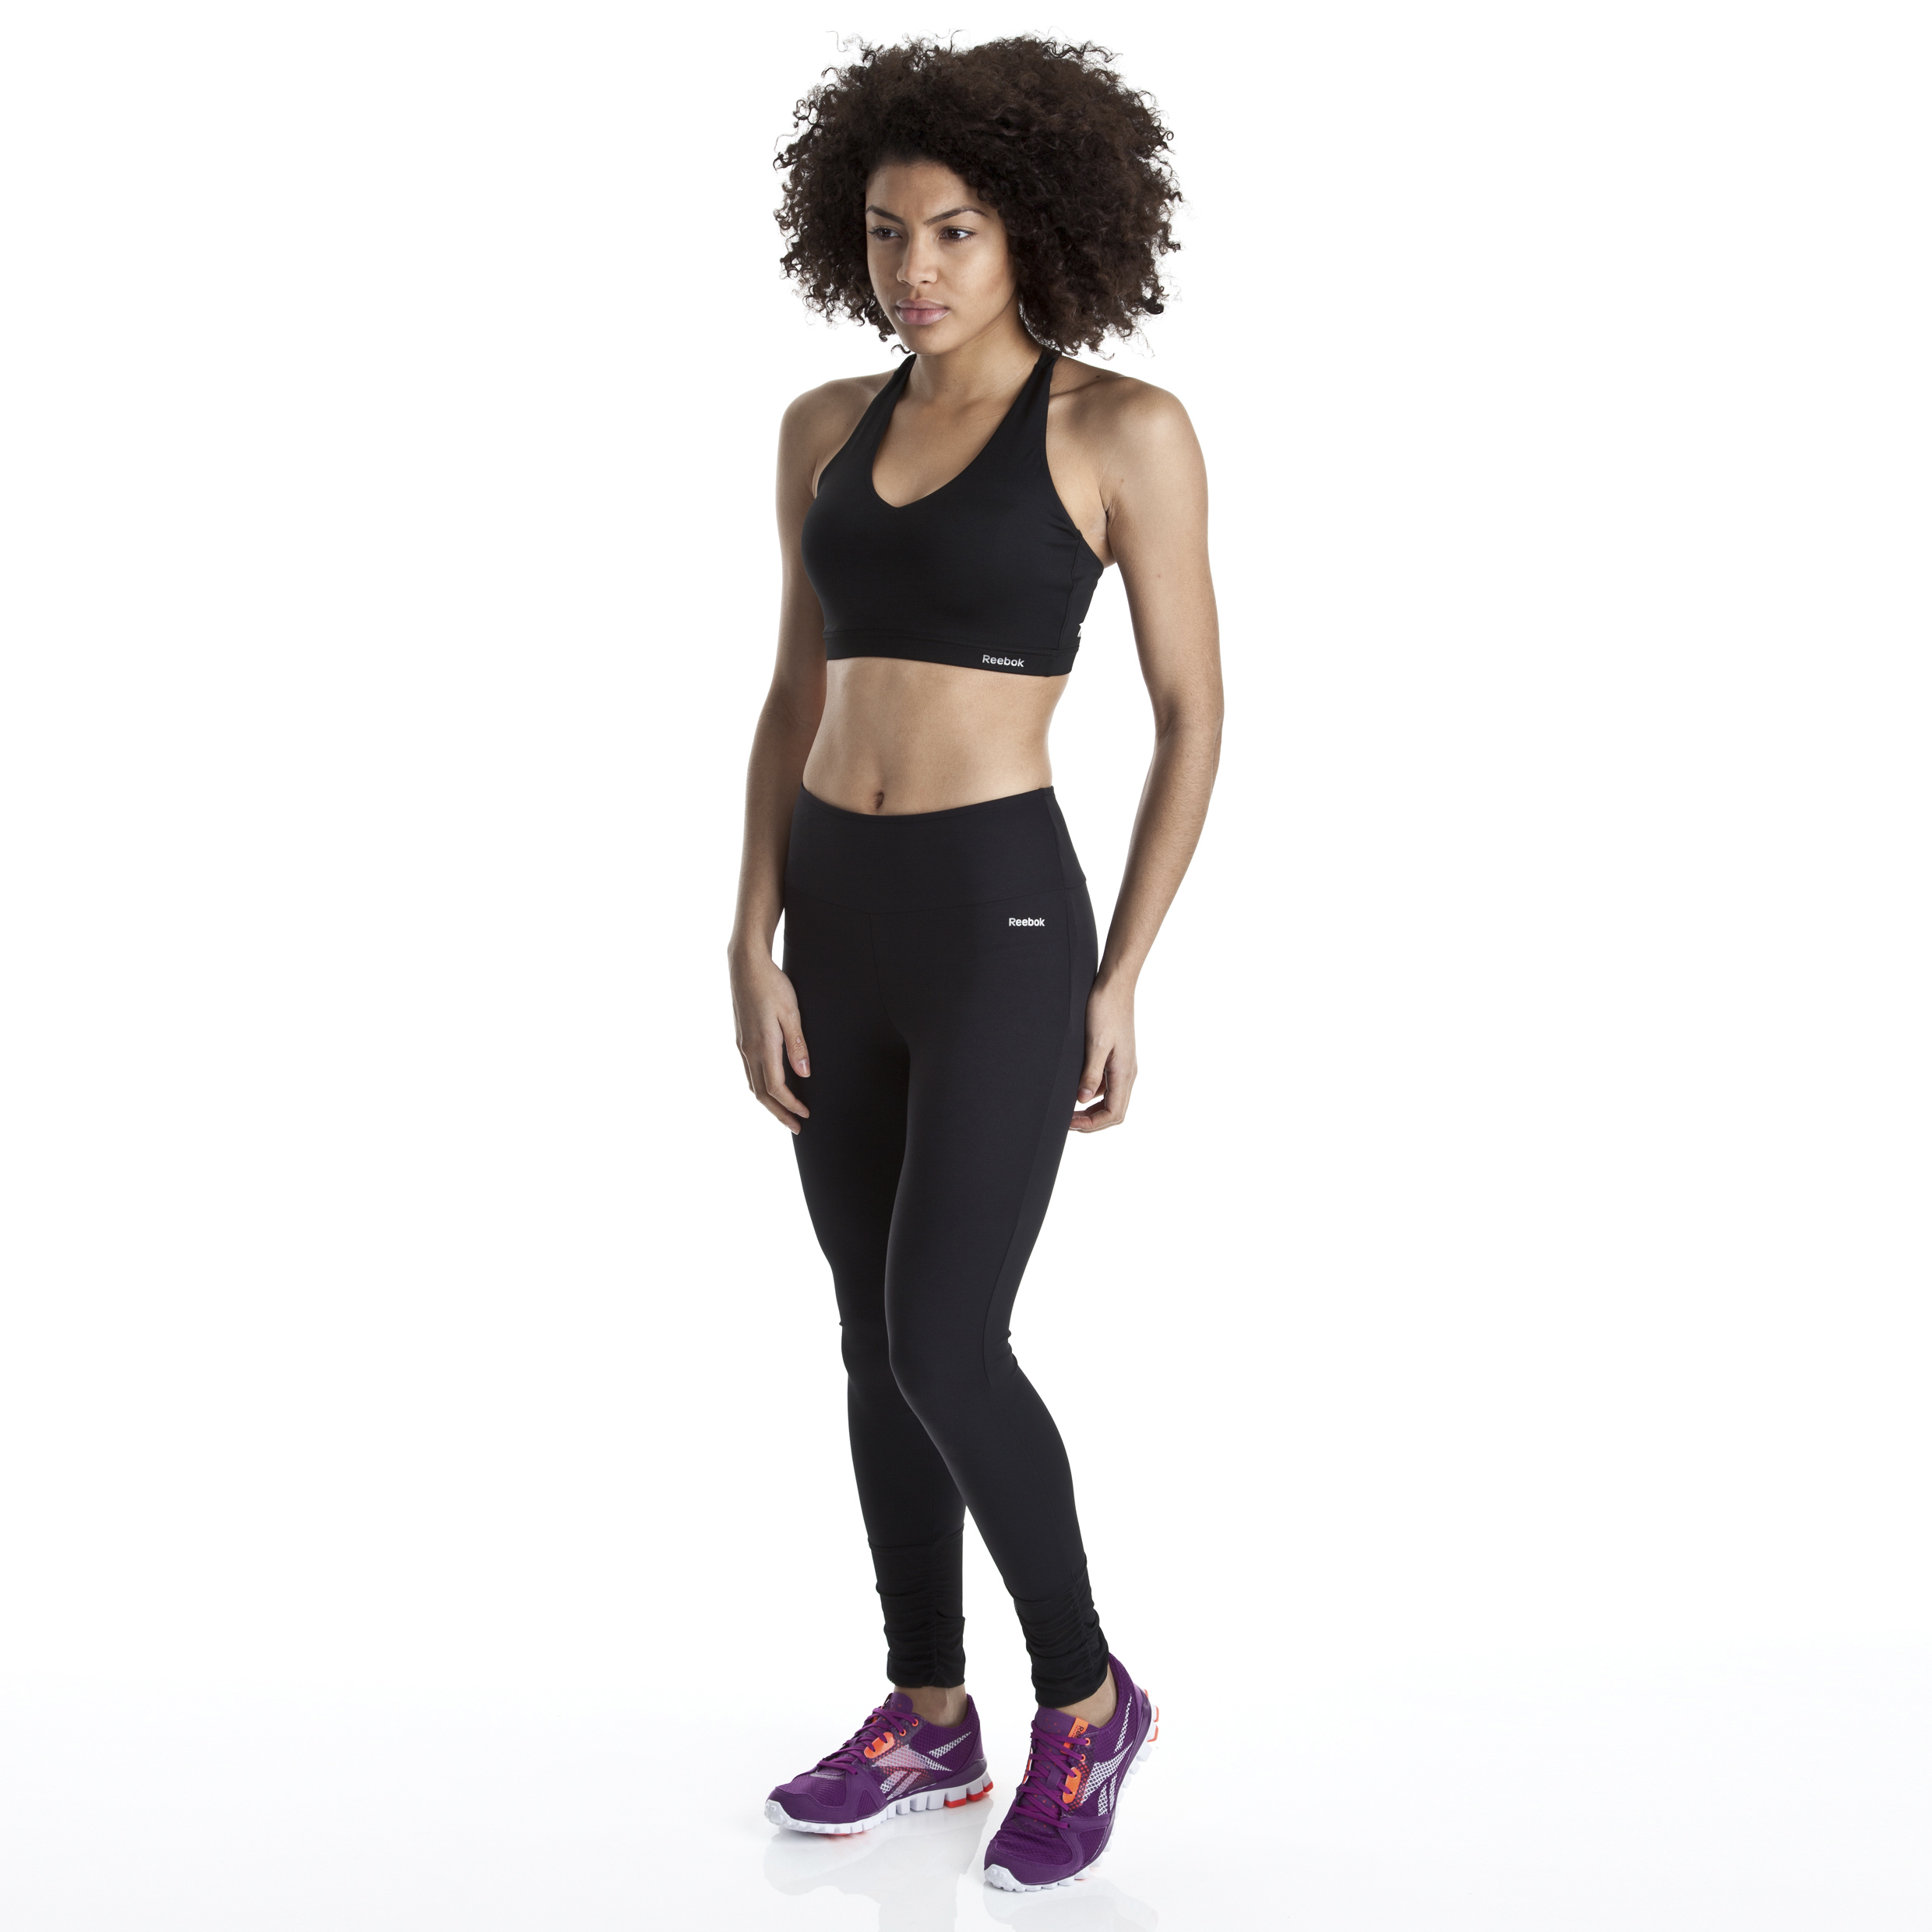 Reebok Shapewear Legging - Black - Women